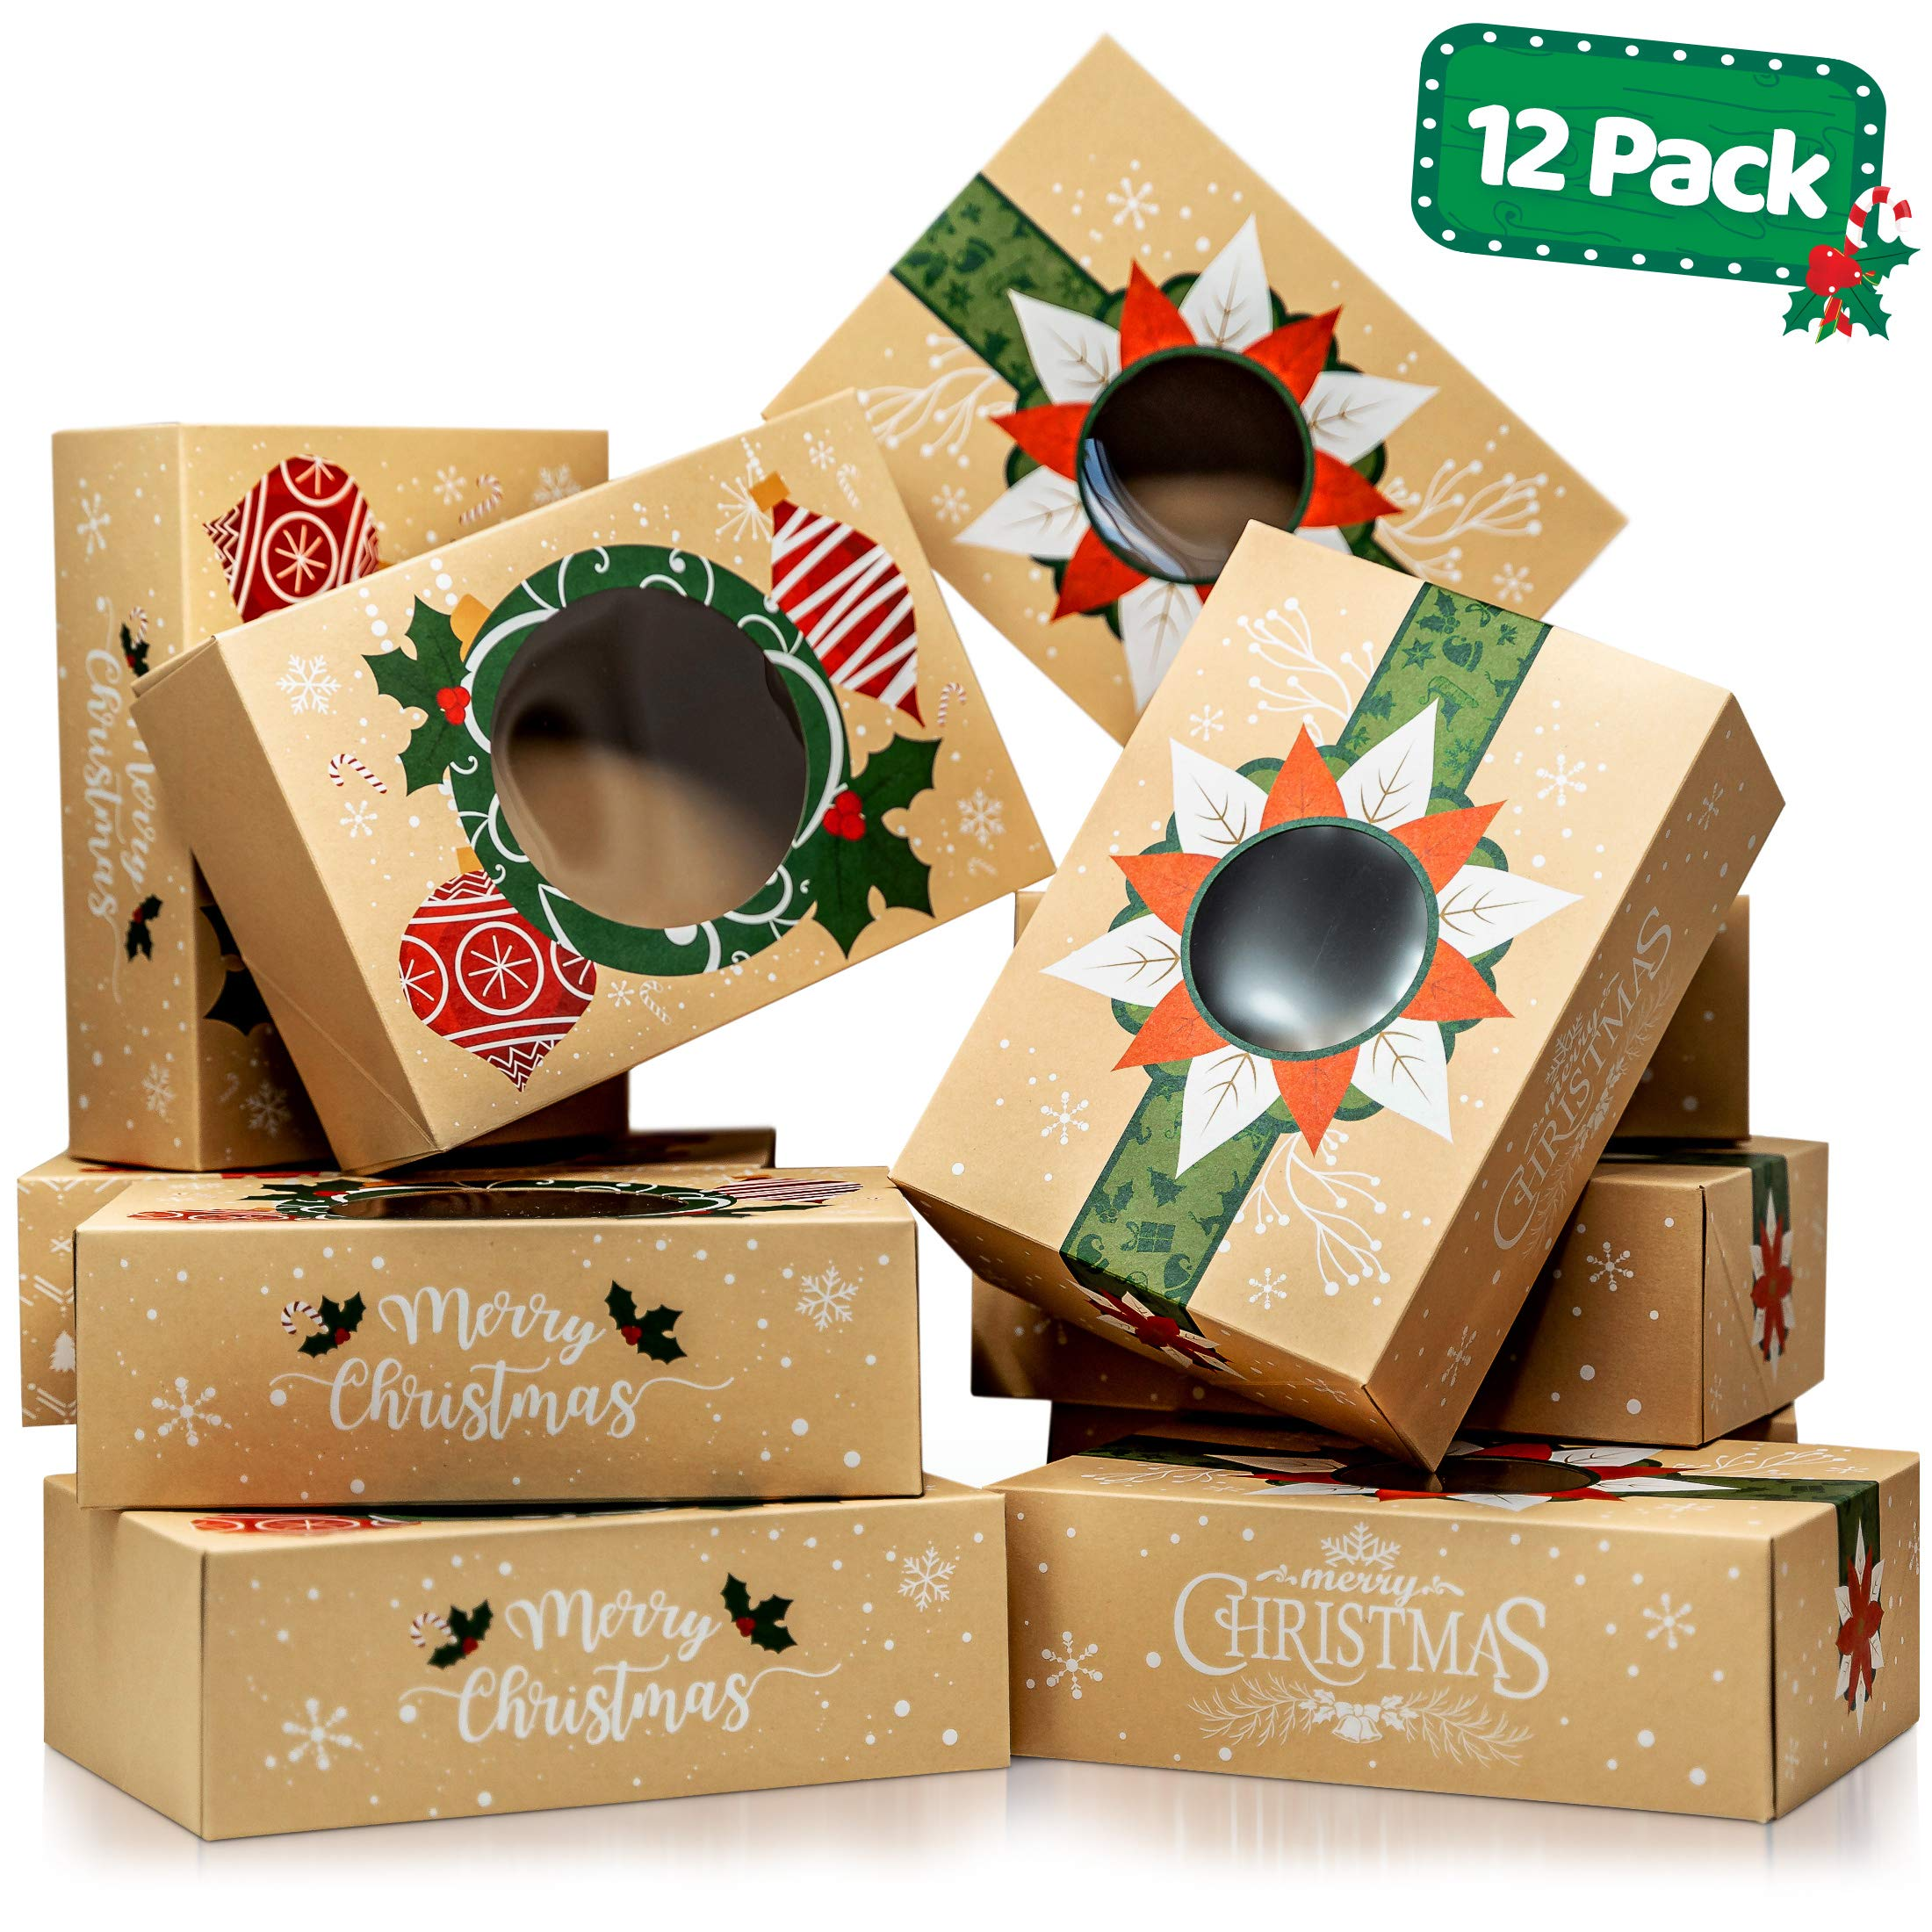 Christmas Cookie Boxes with Window - Bulk 12 Pack Kraft - Large Holiday Christmas Food, Bakery Treat Boxes, Candy and Cookie Boxes for Gift Giving - Kraft Packaging Containers & Tins with Lids by Joyousa